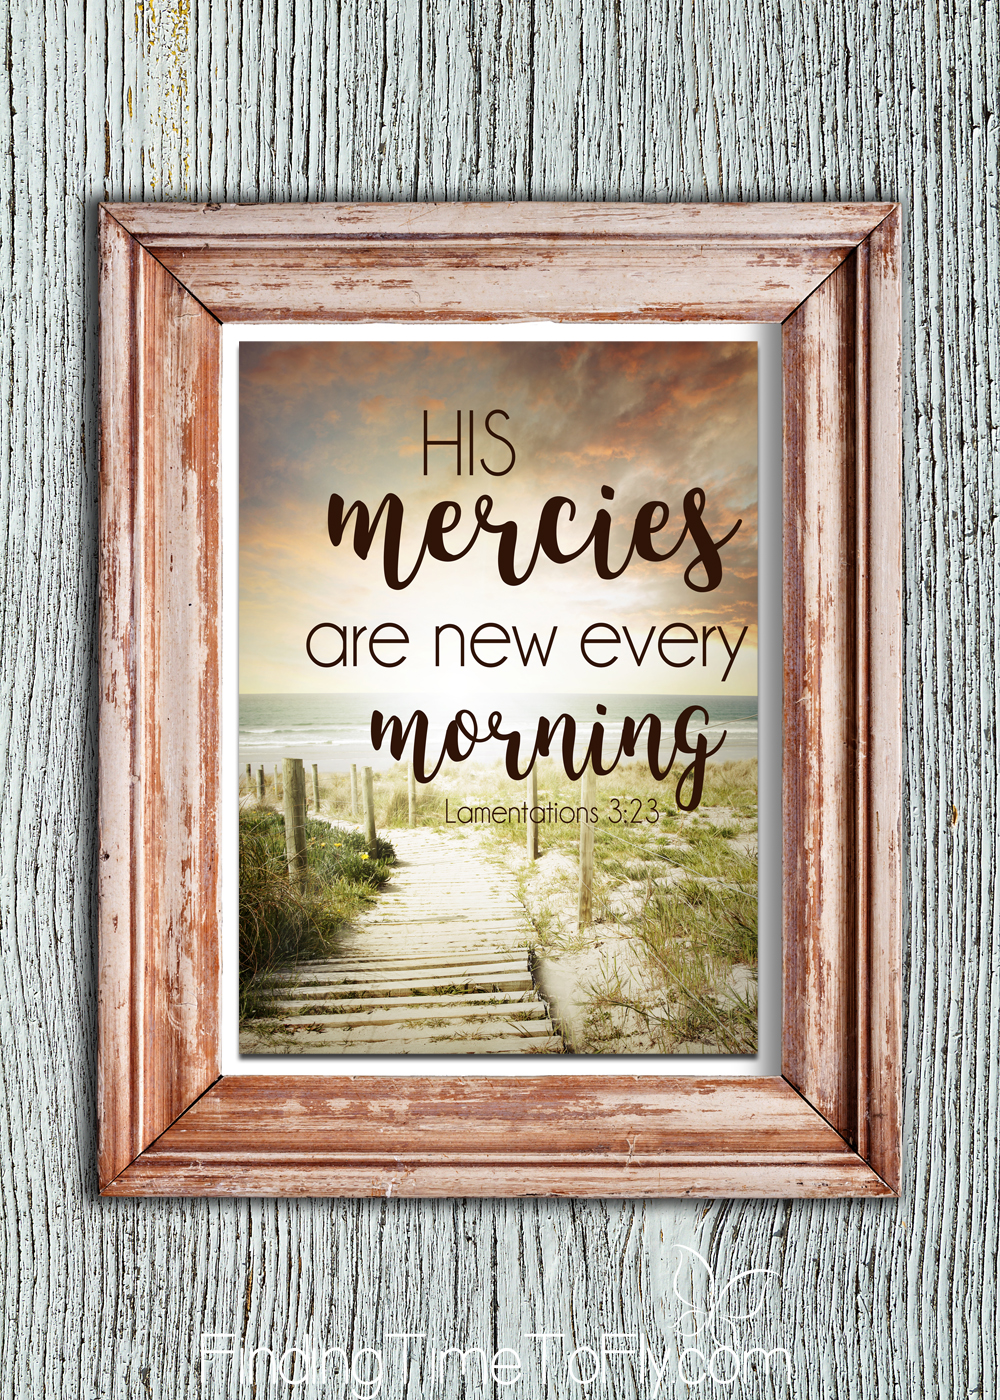 Printable Bible Verse Lamentations 3:23. His mercies are new every morning.